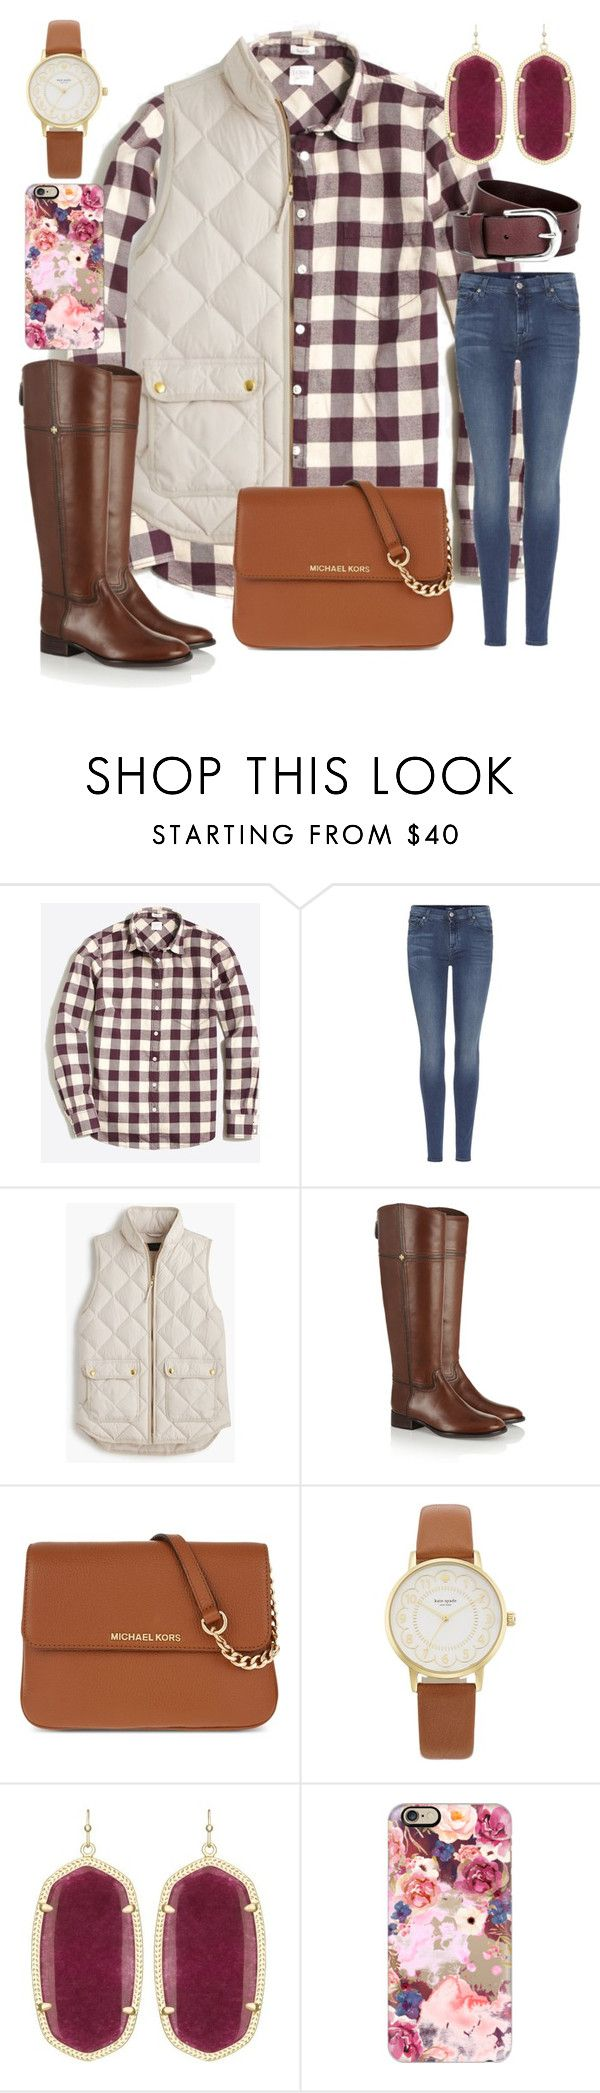 """Happy Thanksgiving!!!"" by ctrygrl1999 ❤ liked on Polyvore featuring J.Crew, 7 For All Mankind, Tory Burch, MICHAEL Michael Kors, Kate Spade, Kendra Scott and Casetify"